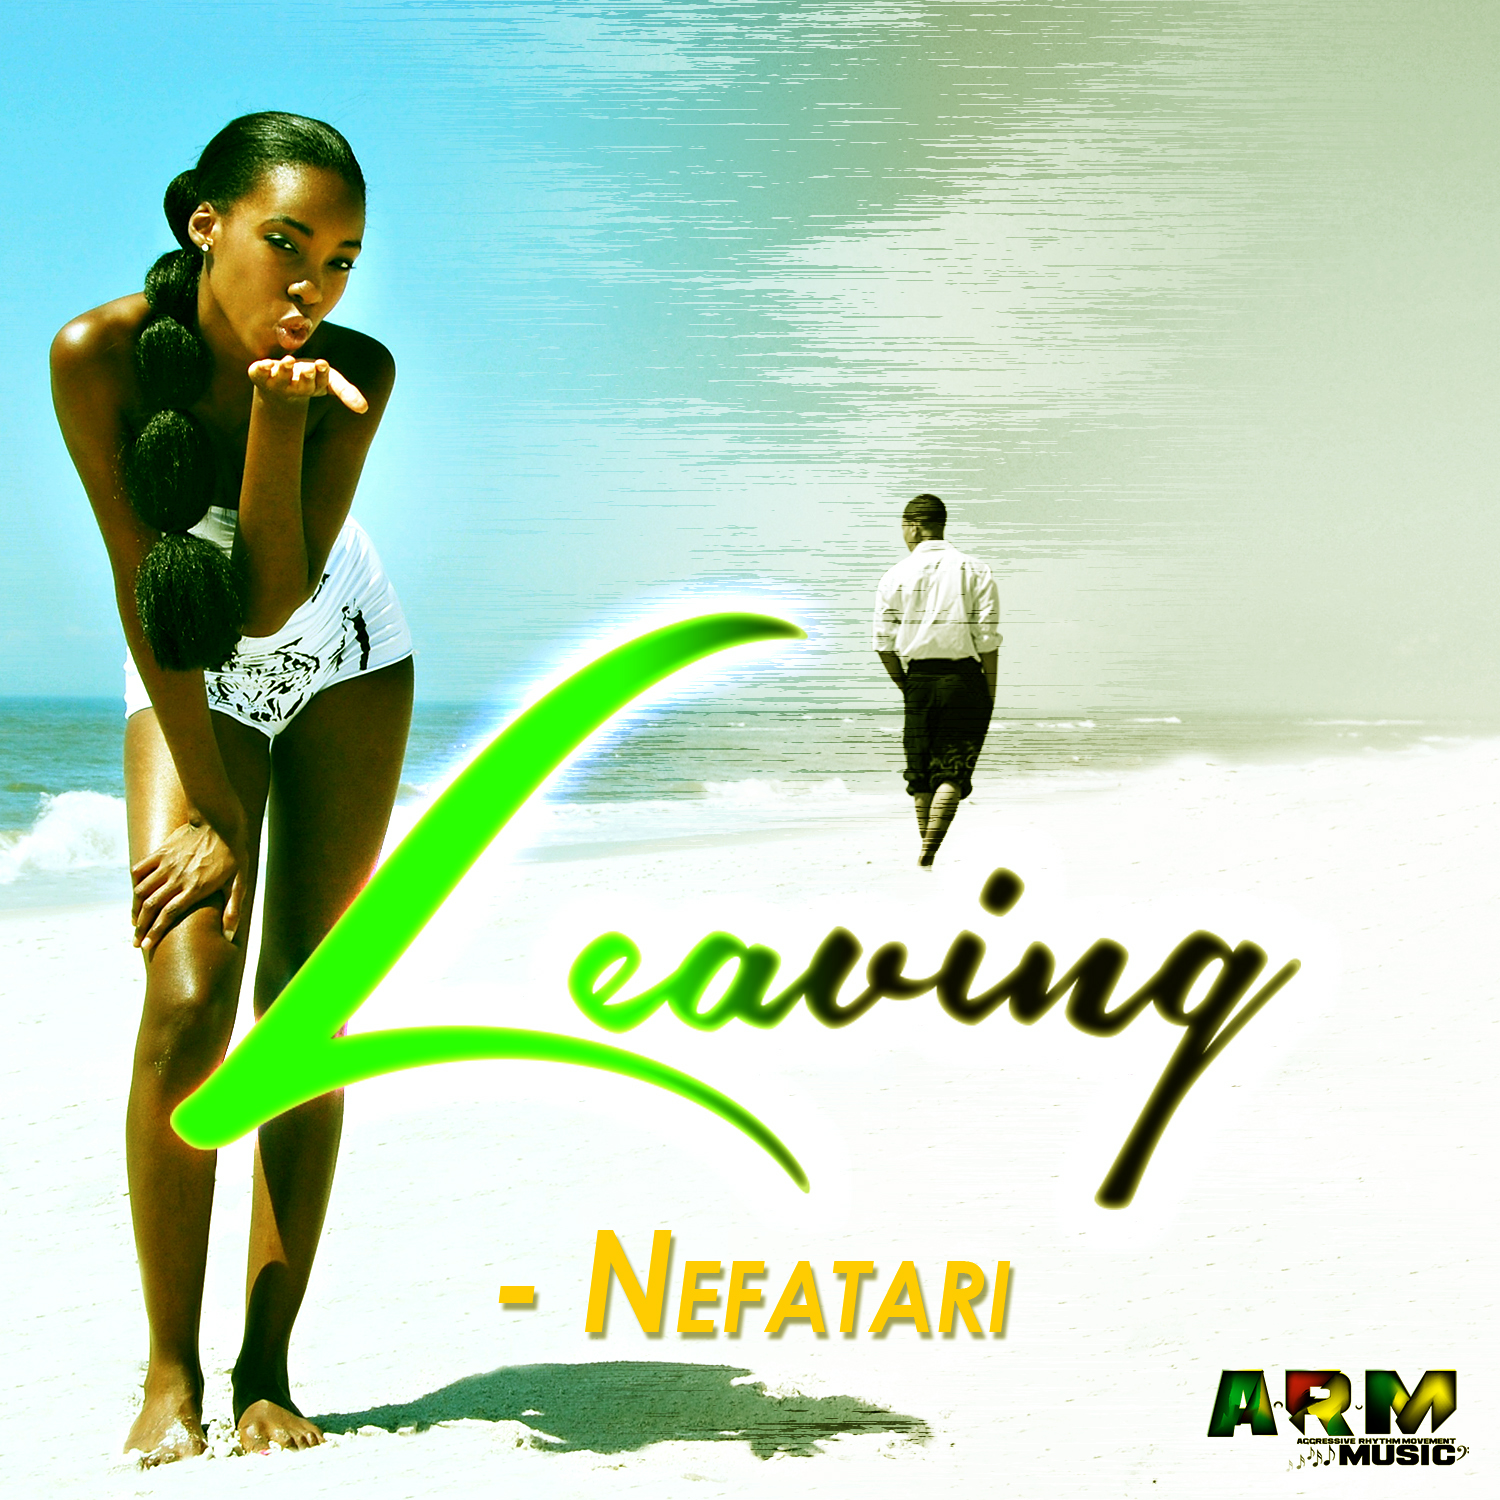 Nefatari-Leaving-artwork-Cover